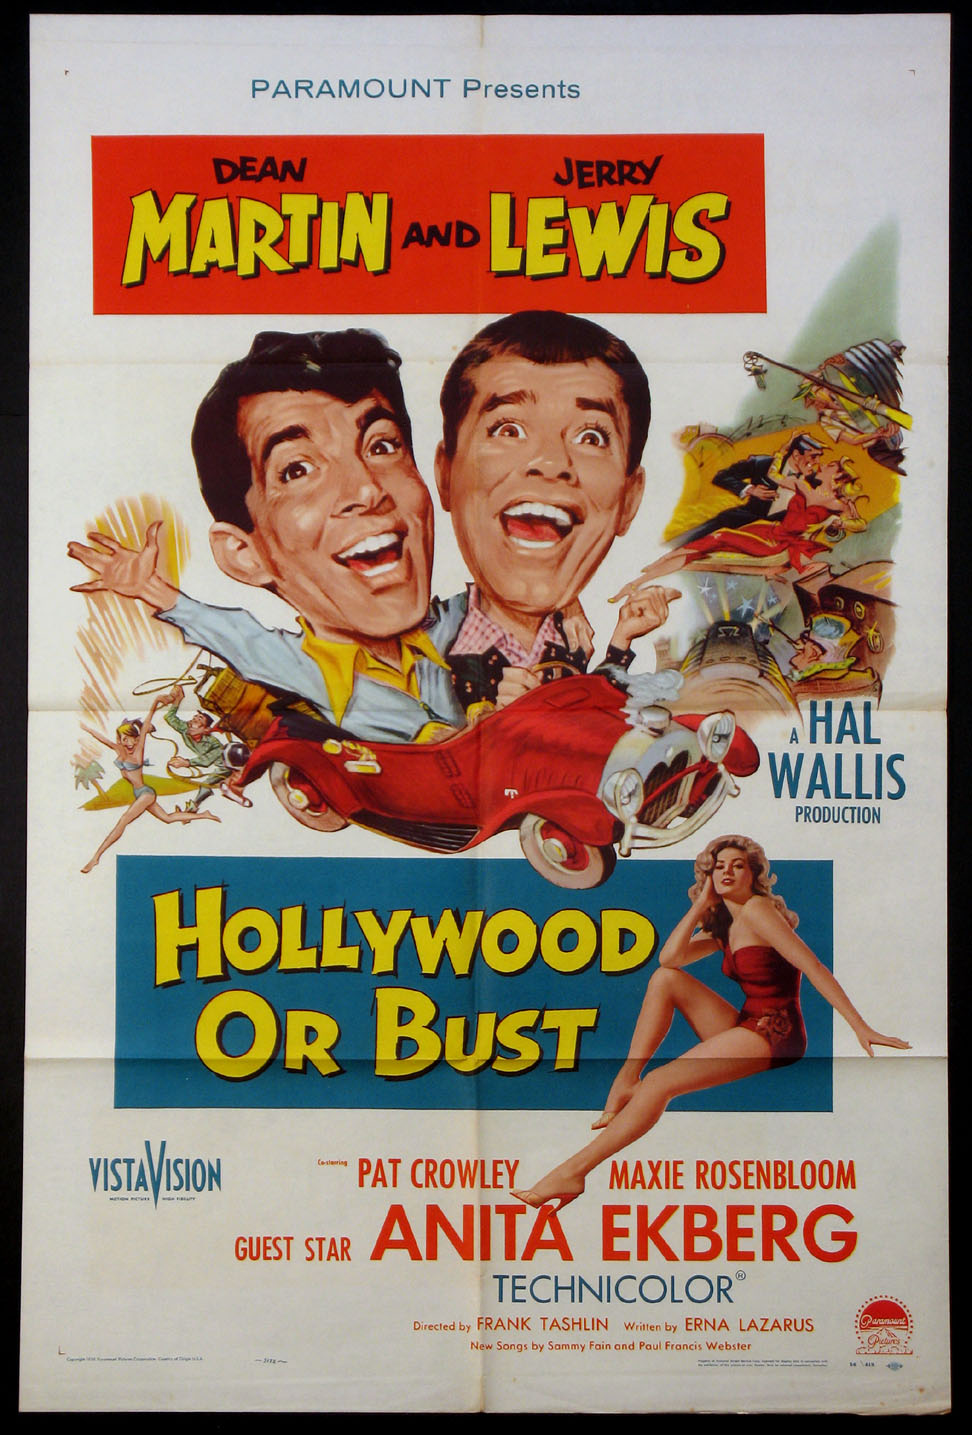 HOLLYWOOD OR BUST @ FilmPosters.com